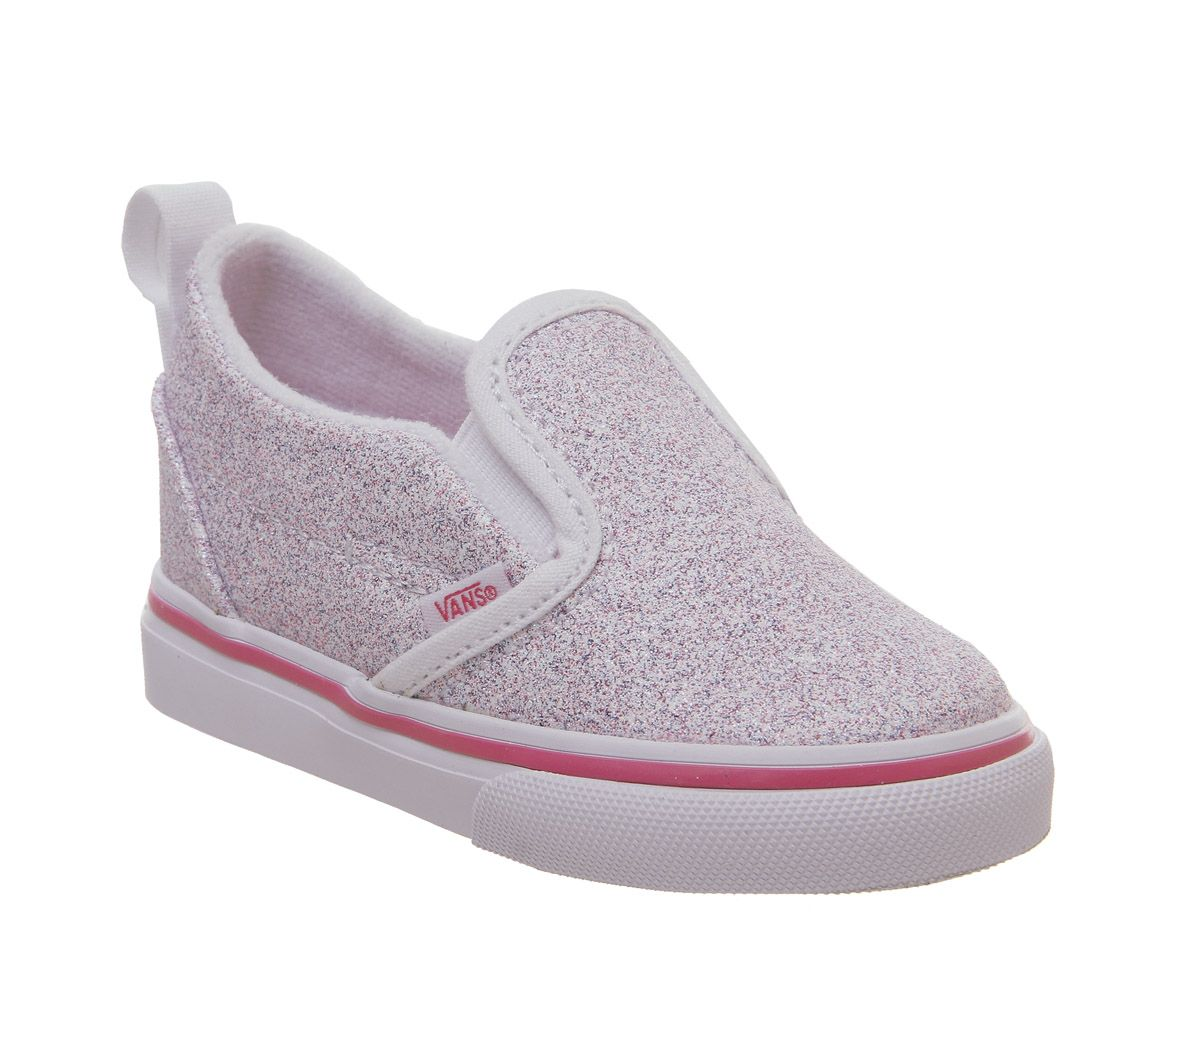 9b0b019309e56f Vans Classic Slip On Toddlers True White Carmine Rose Glitter - Unisex